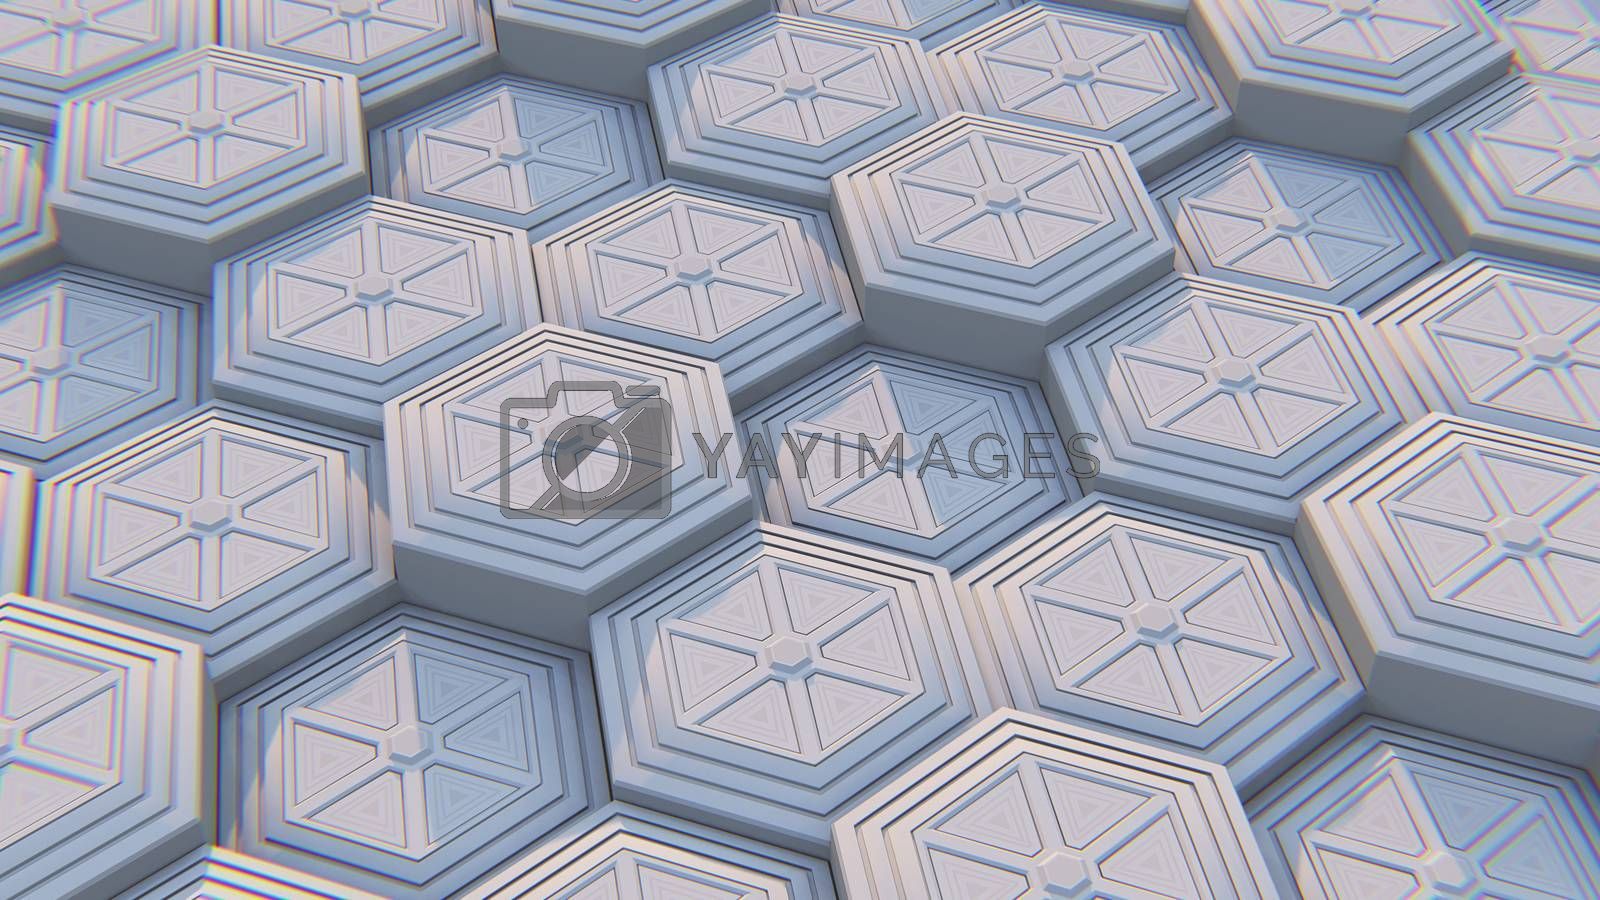 White geometric hexagonal abstract background. 3D illustration by Teerawit Tj-rabbit